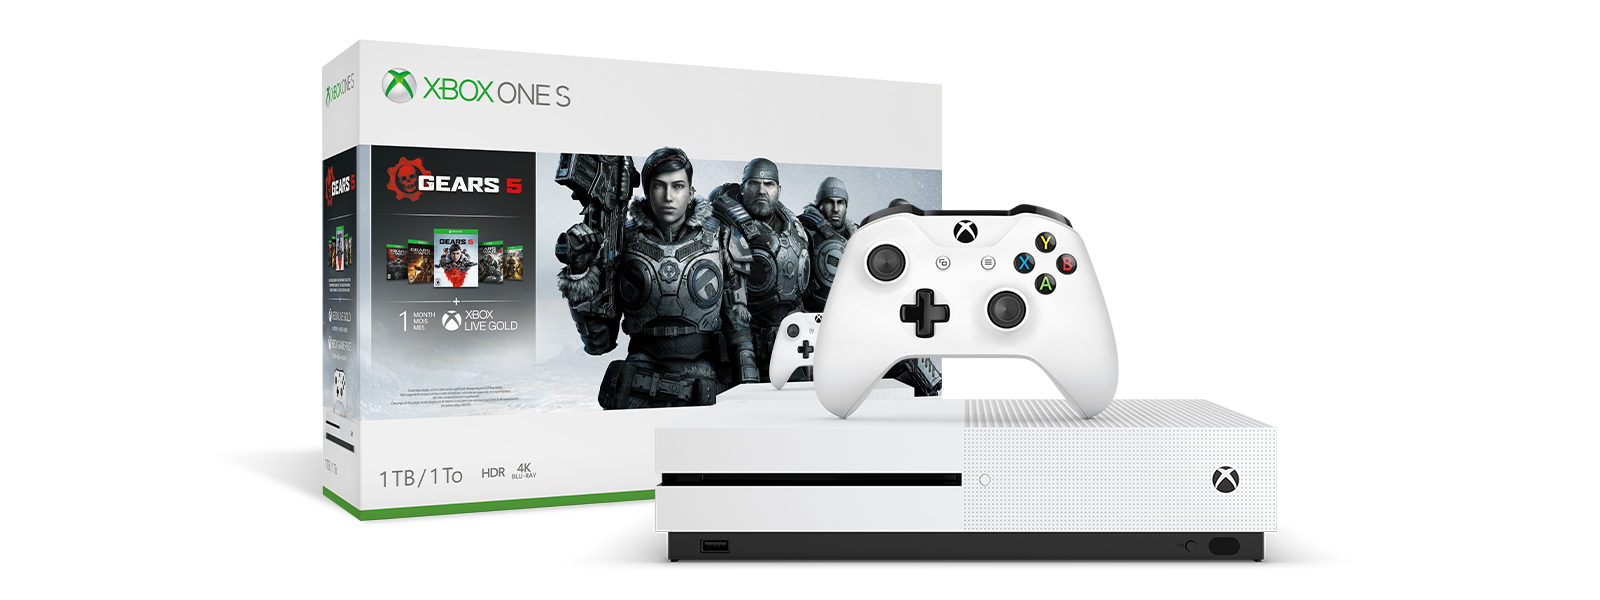 Xbox One S Gears 5 Bundle product box and Xbox One S